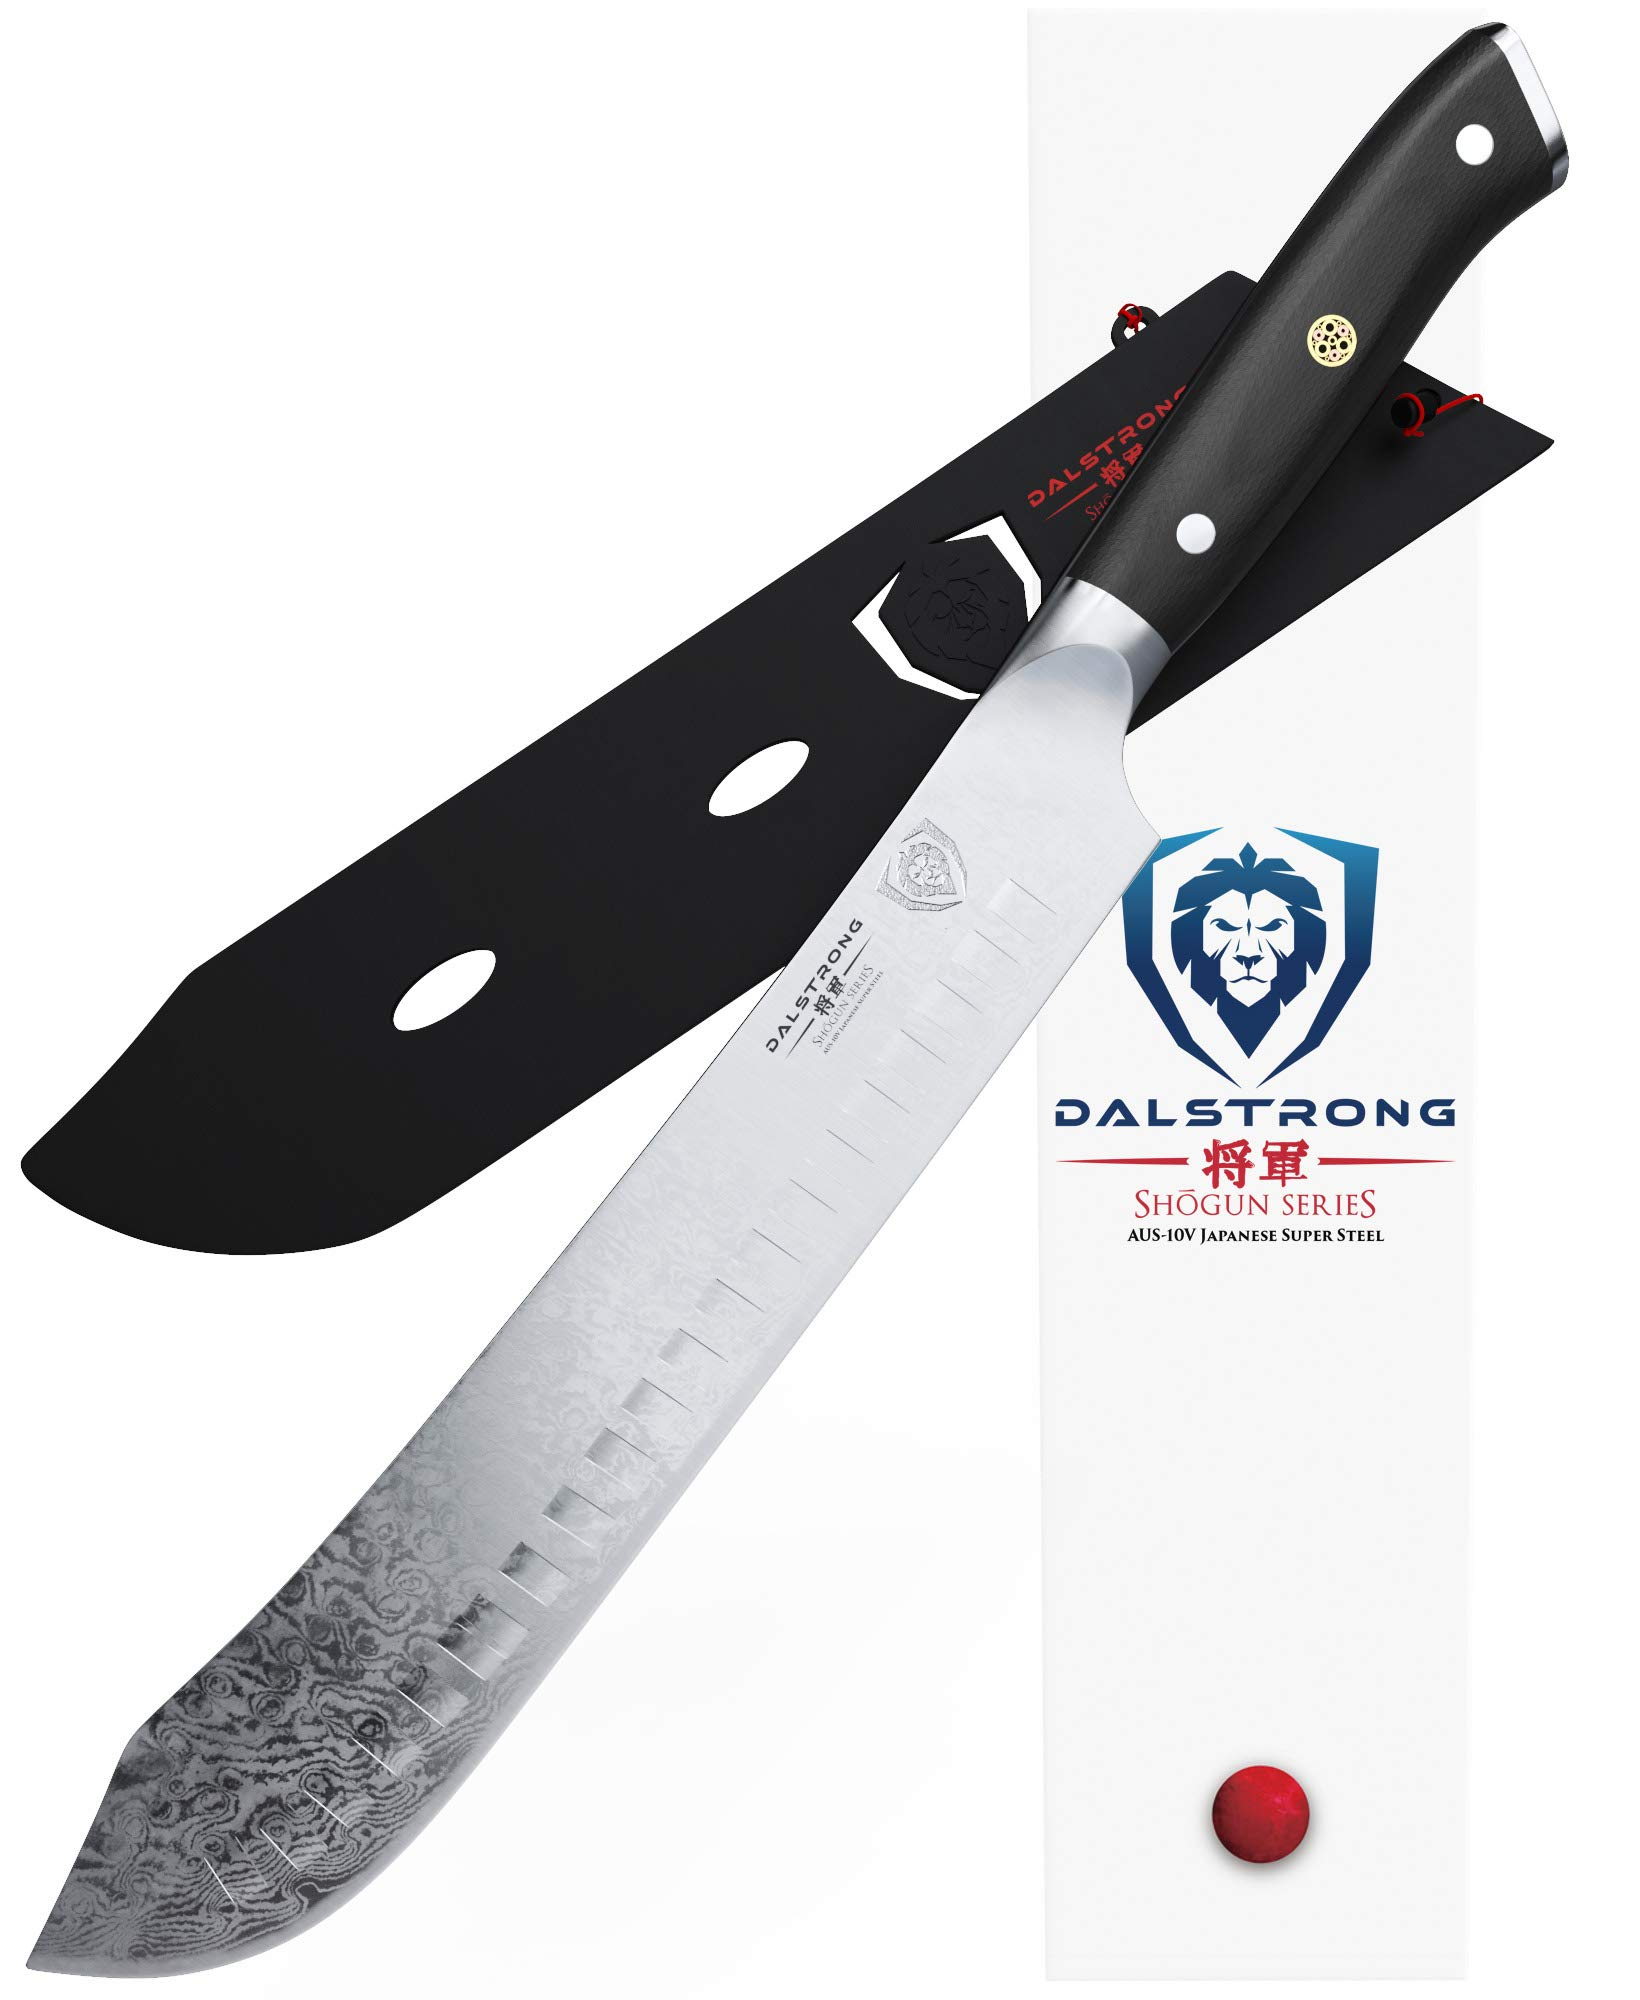 DALSTRONG Bull Nose Butcher Knife - Shogun Series - 10'' -Japanese AUS-10V Super Steel - Vacuum Heat Treatment - with Sheath - Meat, BBQ, Breaking Knife by Dalstrong